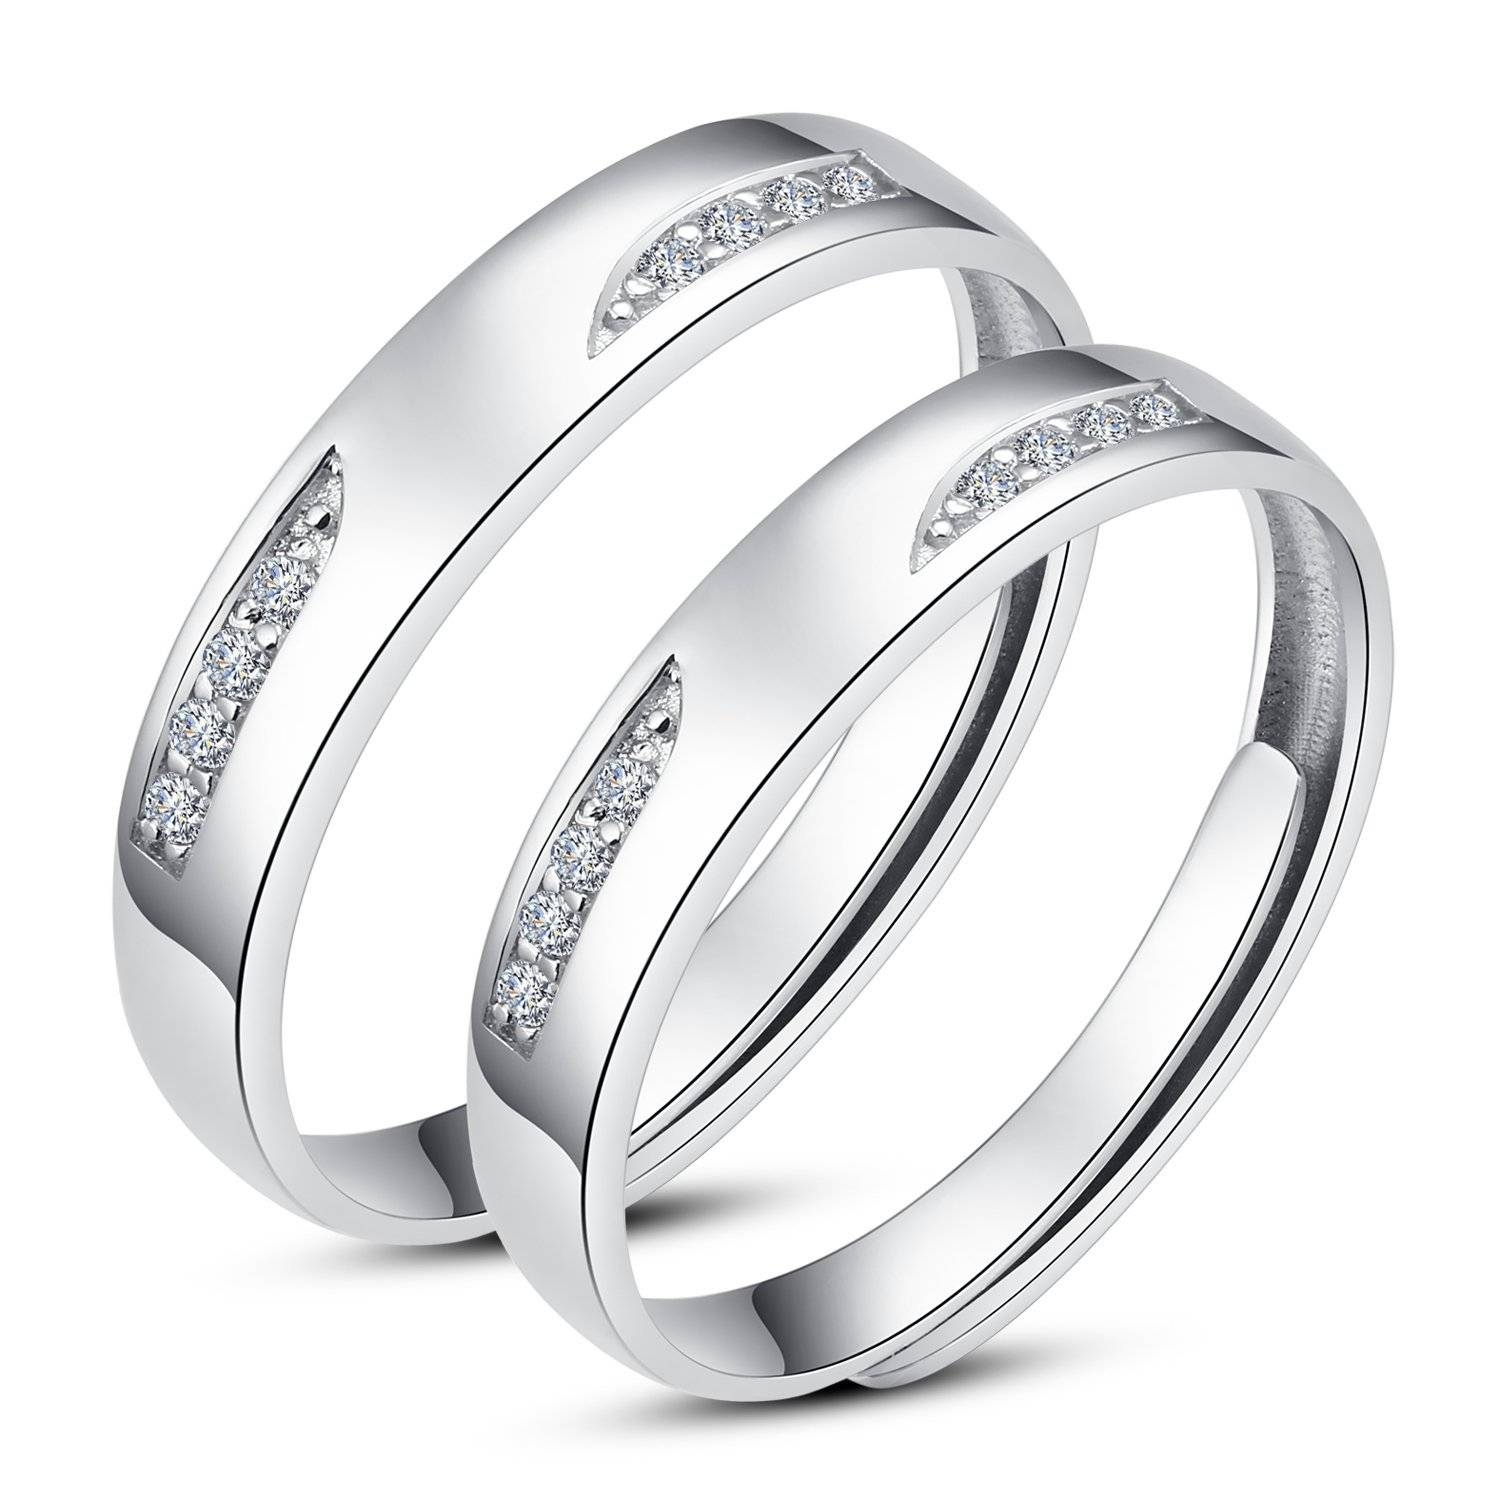 25 Year Wedding Anniversary Rings | Wedding Ideas Throughout Best And Newest 25 Year Wedding Anniversary Rings (View 1 of 25)